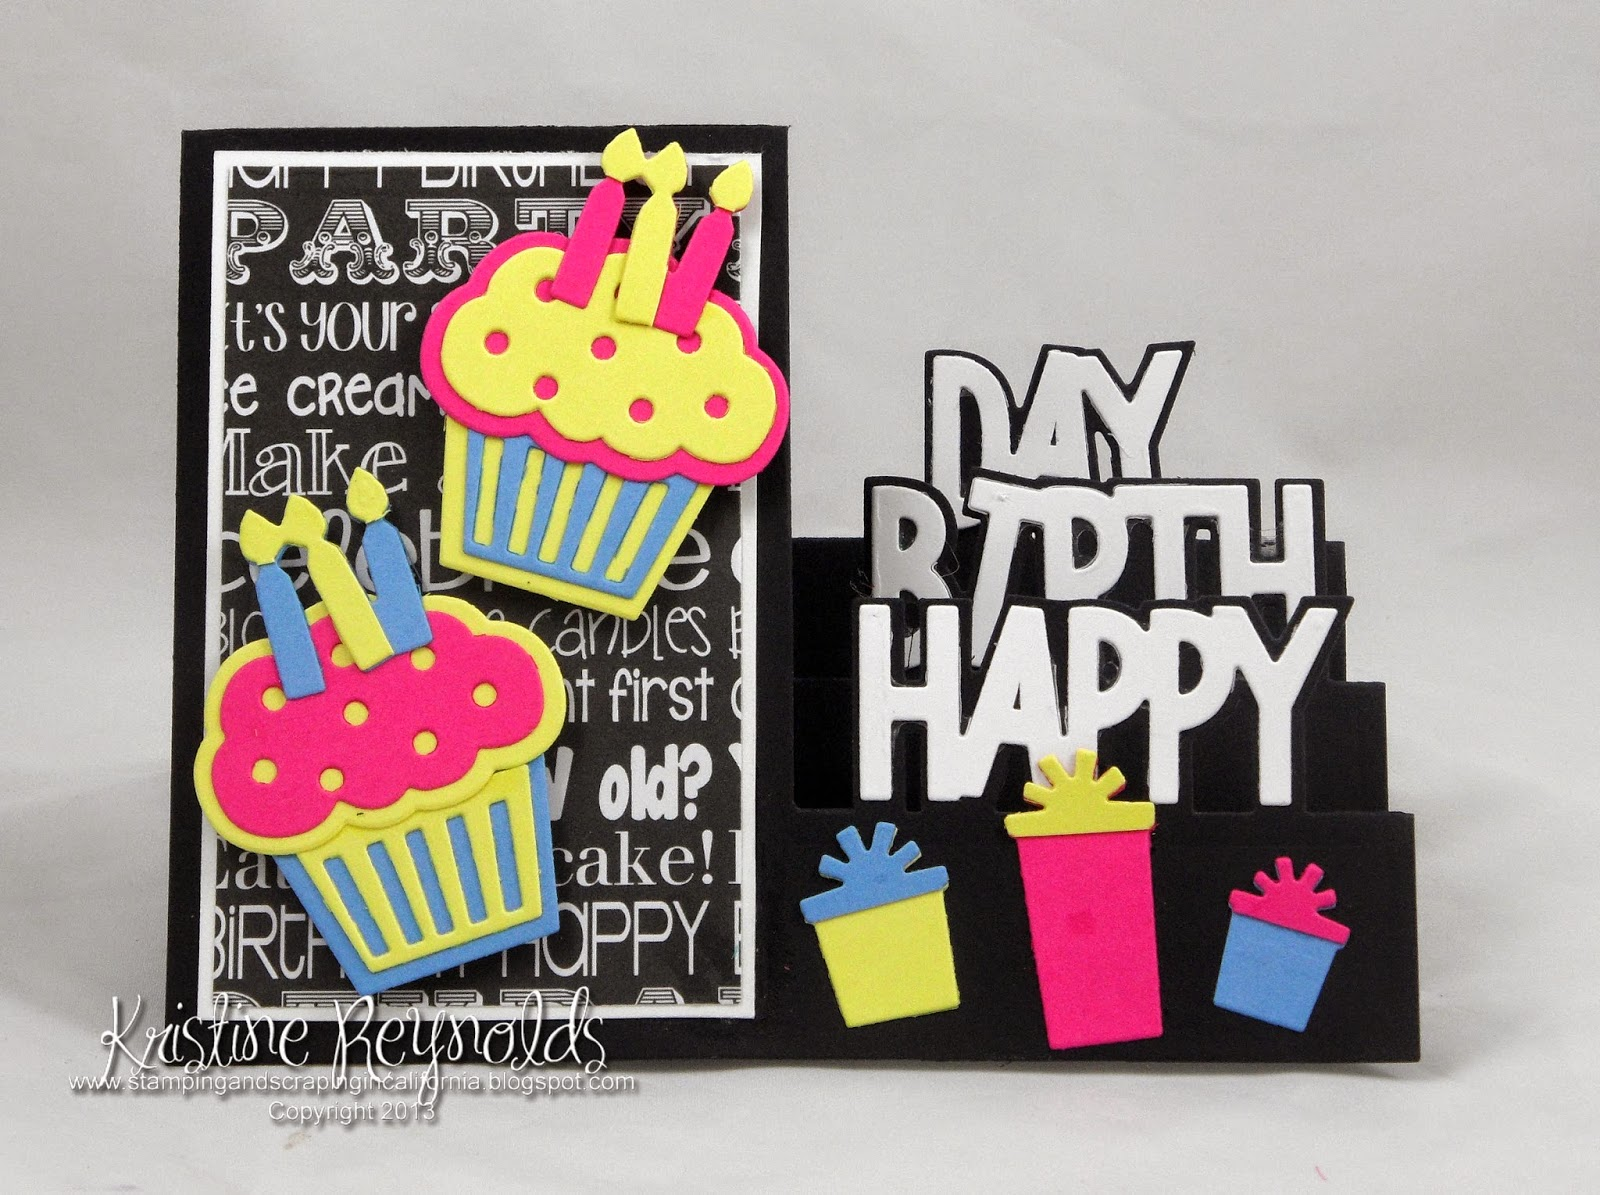 how to make birthday cap step by step